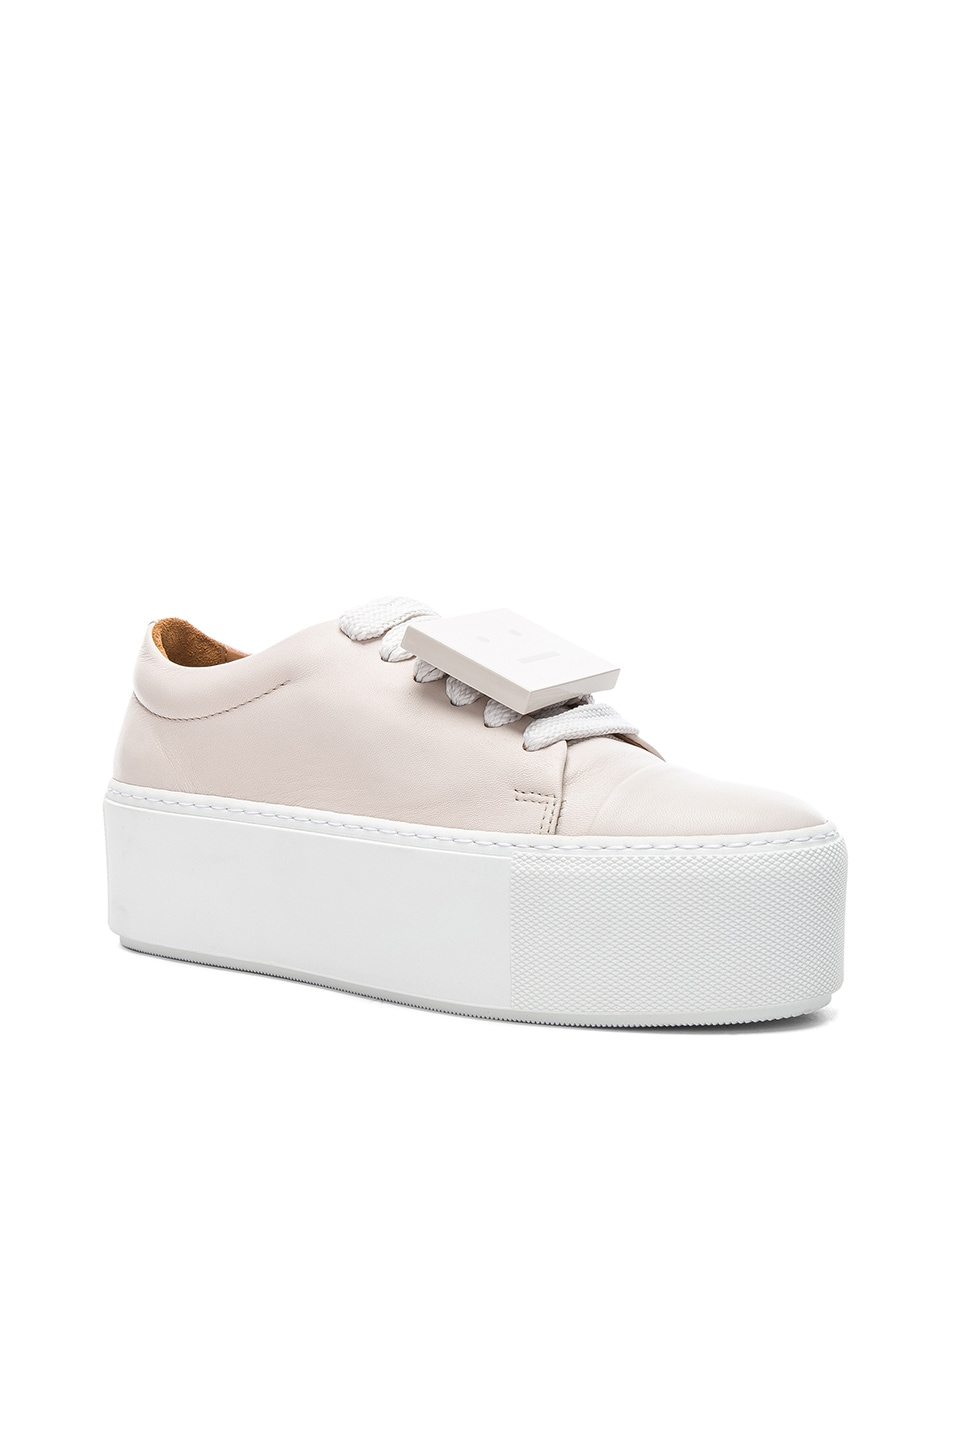 ef92afae5787 Image 2 of Acne Studios Nappa Leather Drihanna Sneakers in Off White   Amber